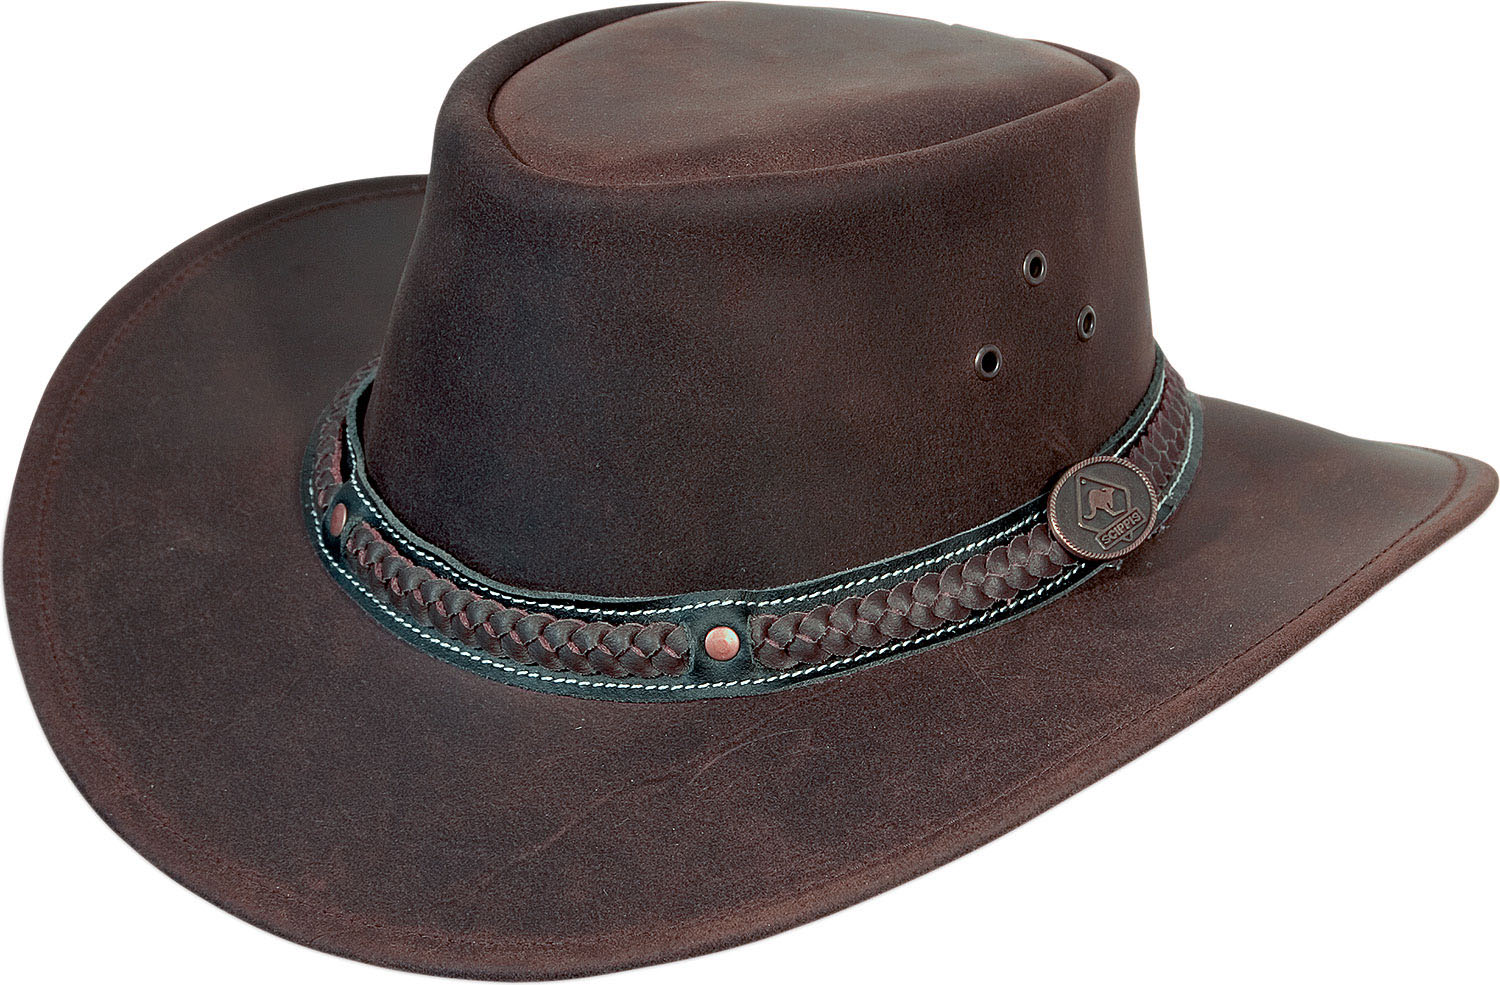 Zoom Hat Wilson brown  0d6d288de3e8